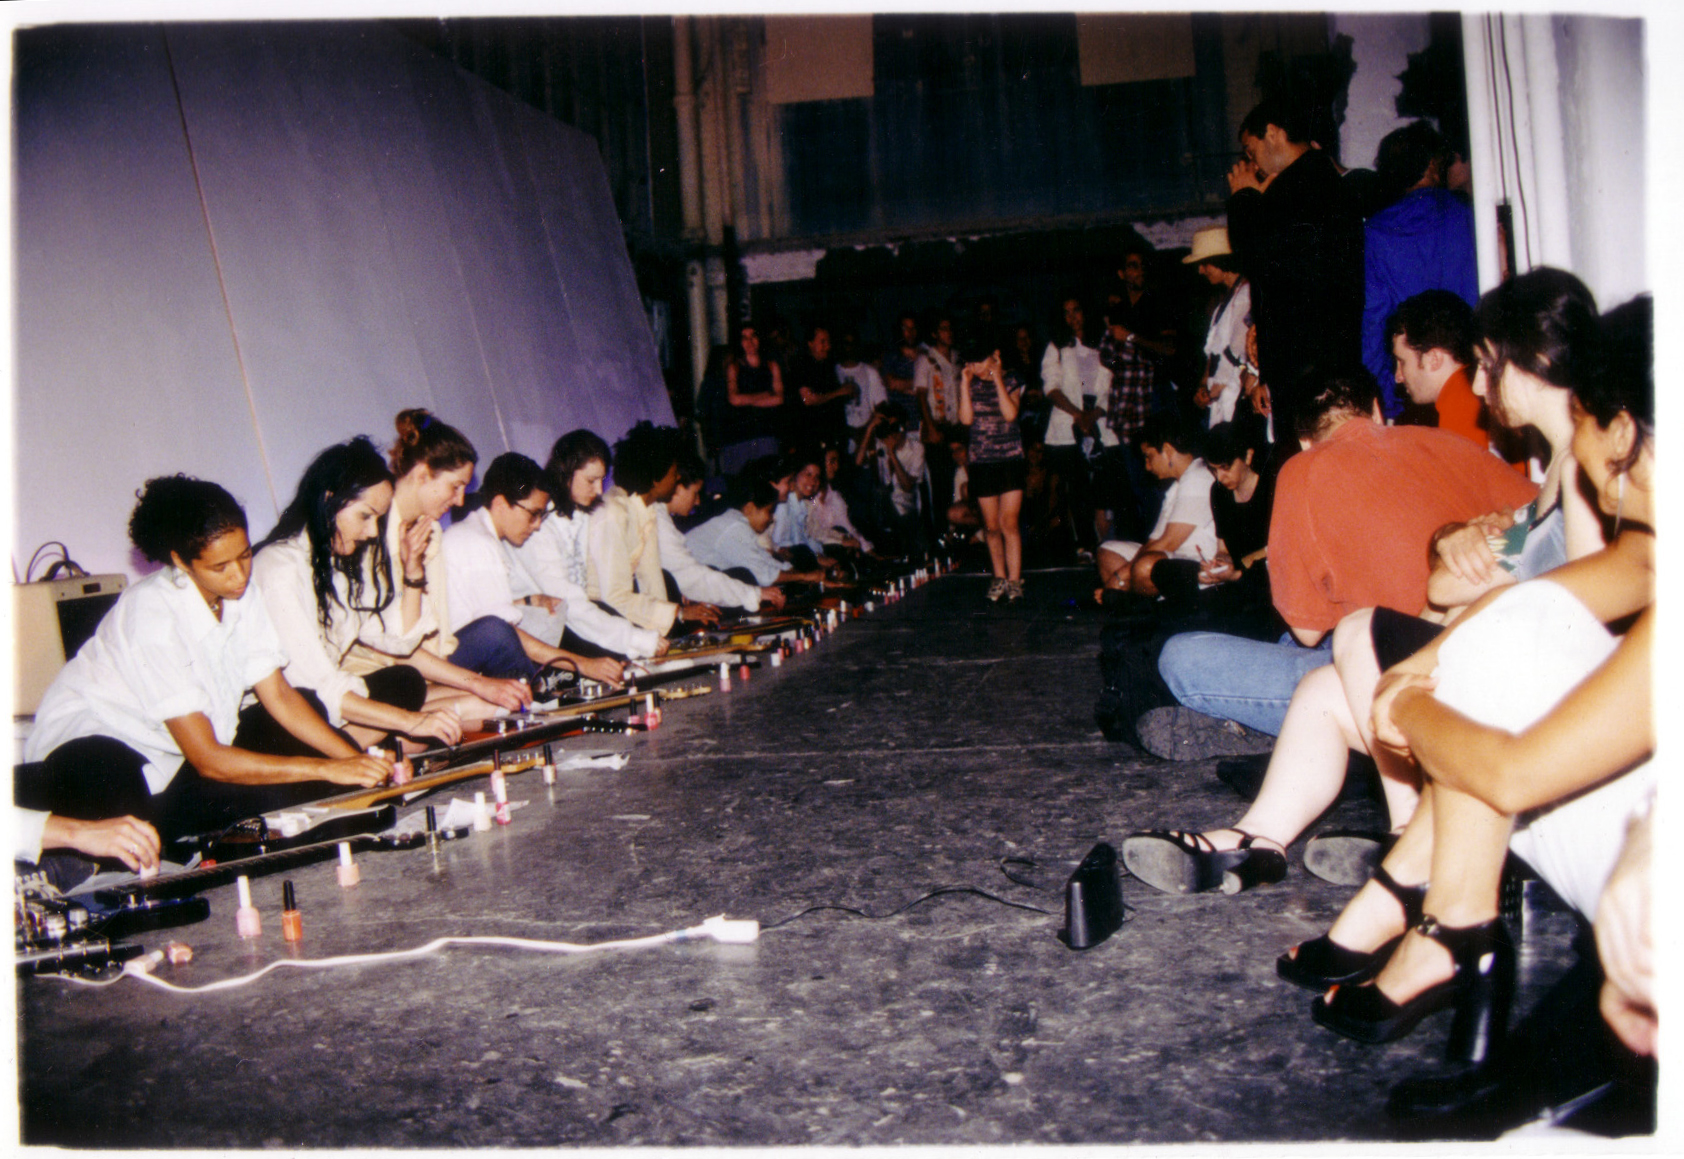 Sheer Frost Orchestra, Greene Naftali Gallery, performance view with Beth Coleman, Kembra Pfahler, Marina Rosenfeld, Brooke Williams, others, New York, 1997